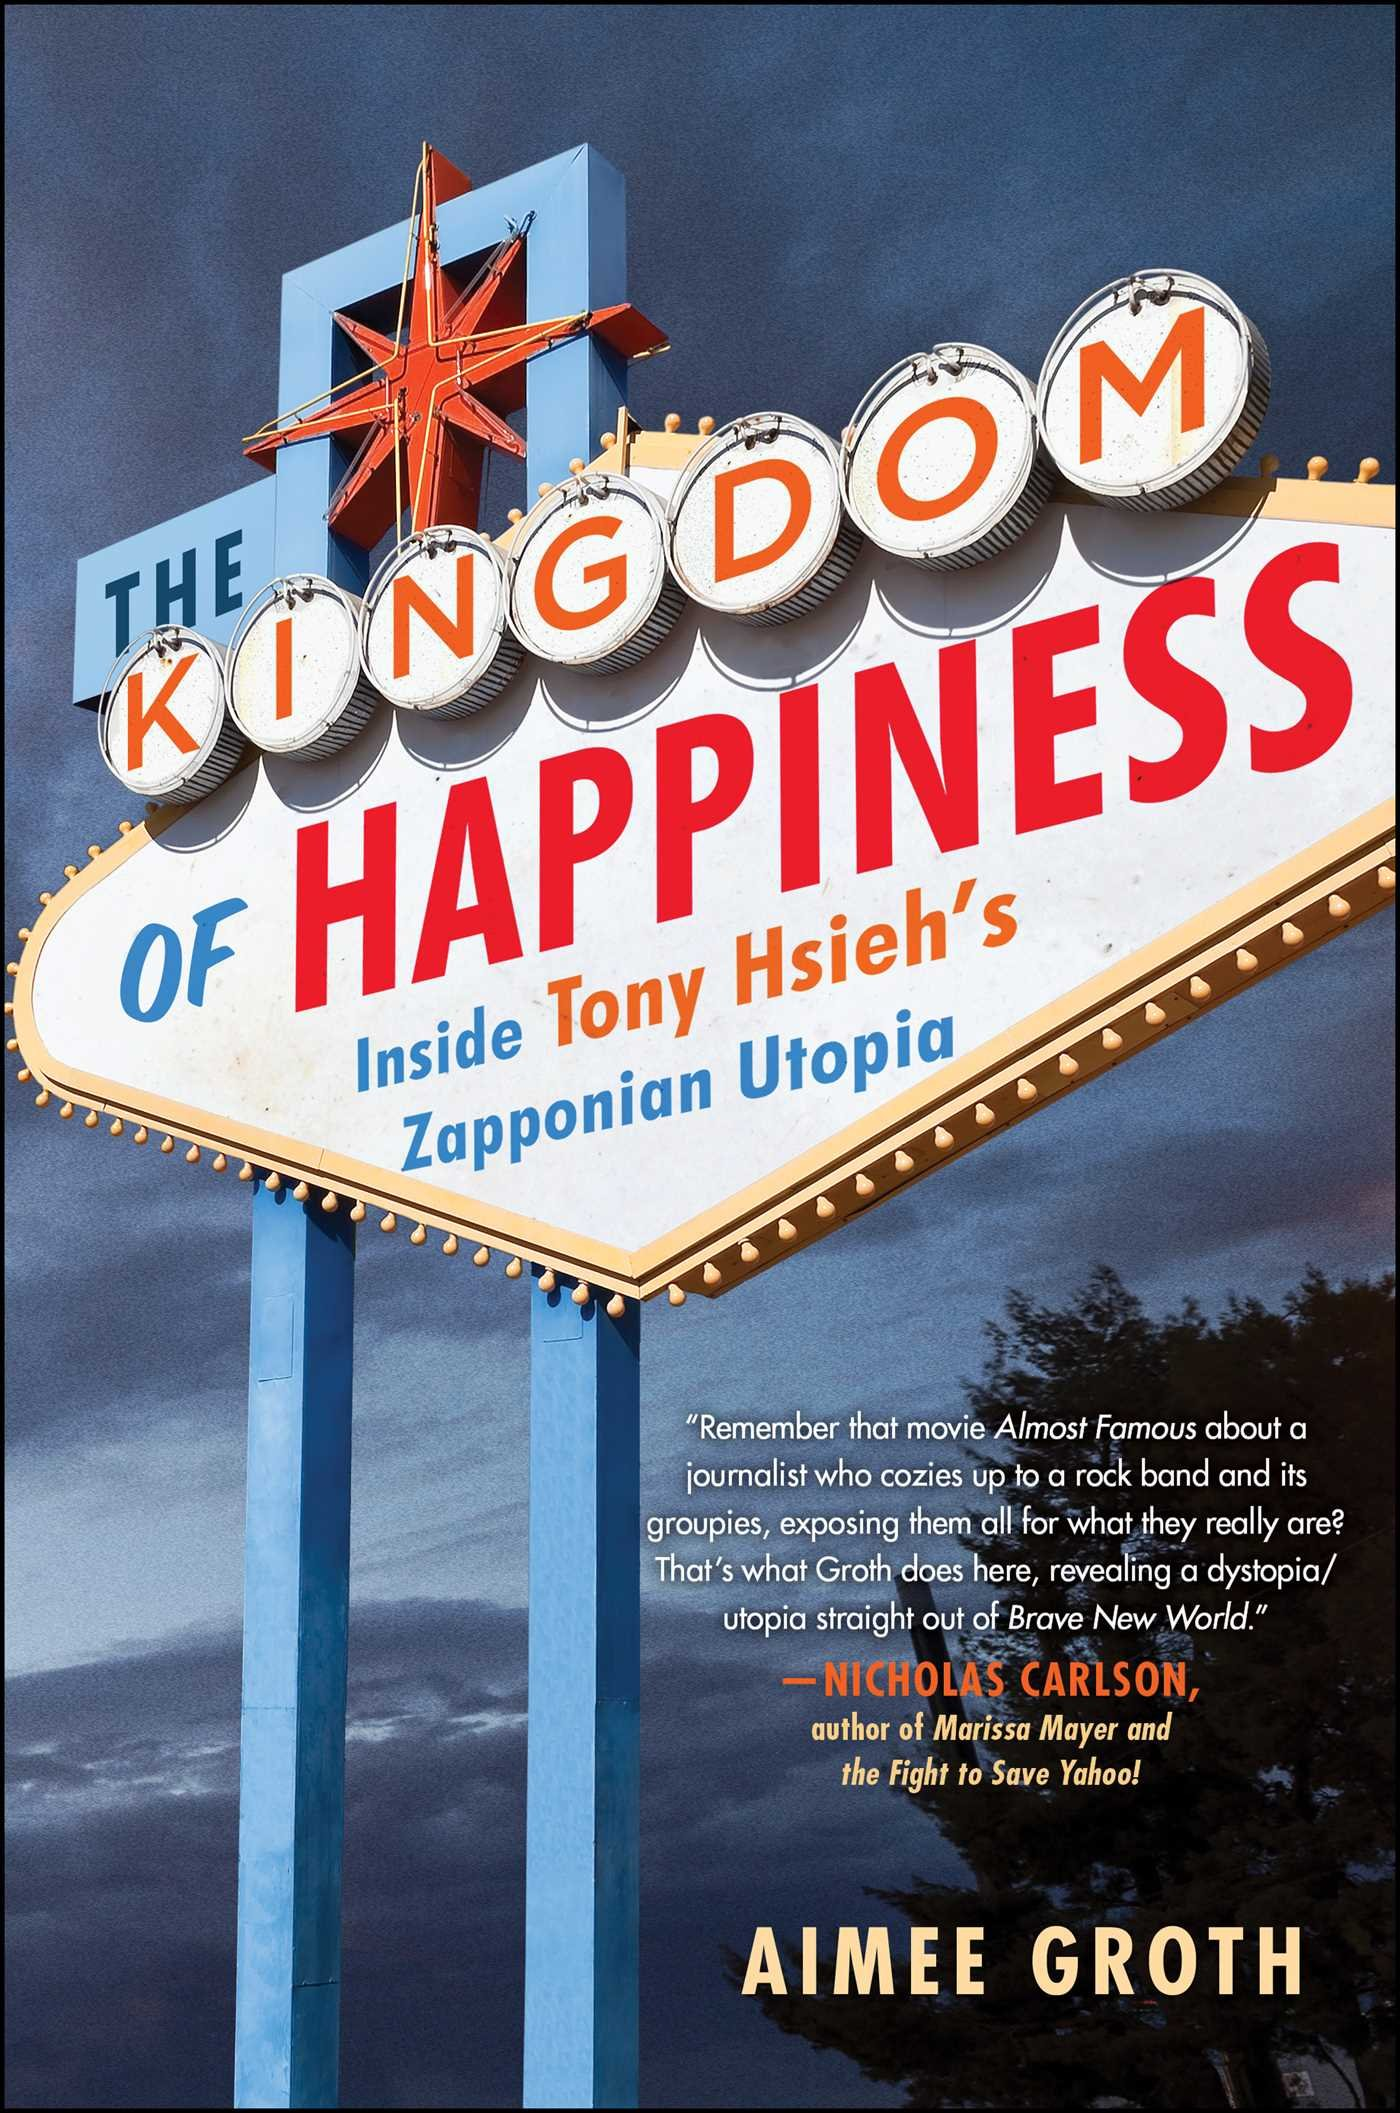 The Kingdom of Happiness: Inside Tony Hsieh's Zapponian Utopia: Aimee  Groth: 9781501129902: Amazon.com: Books